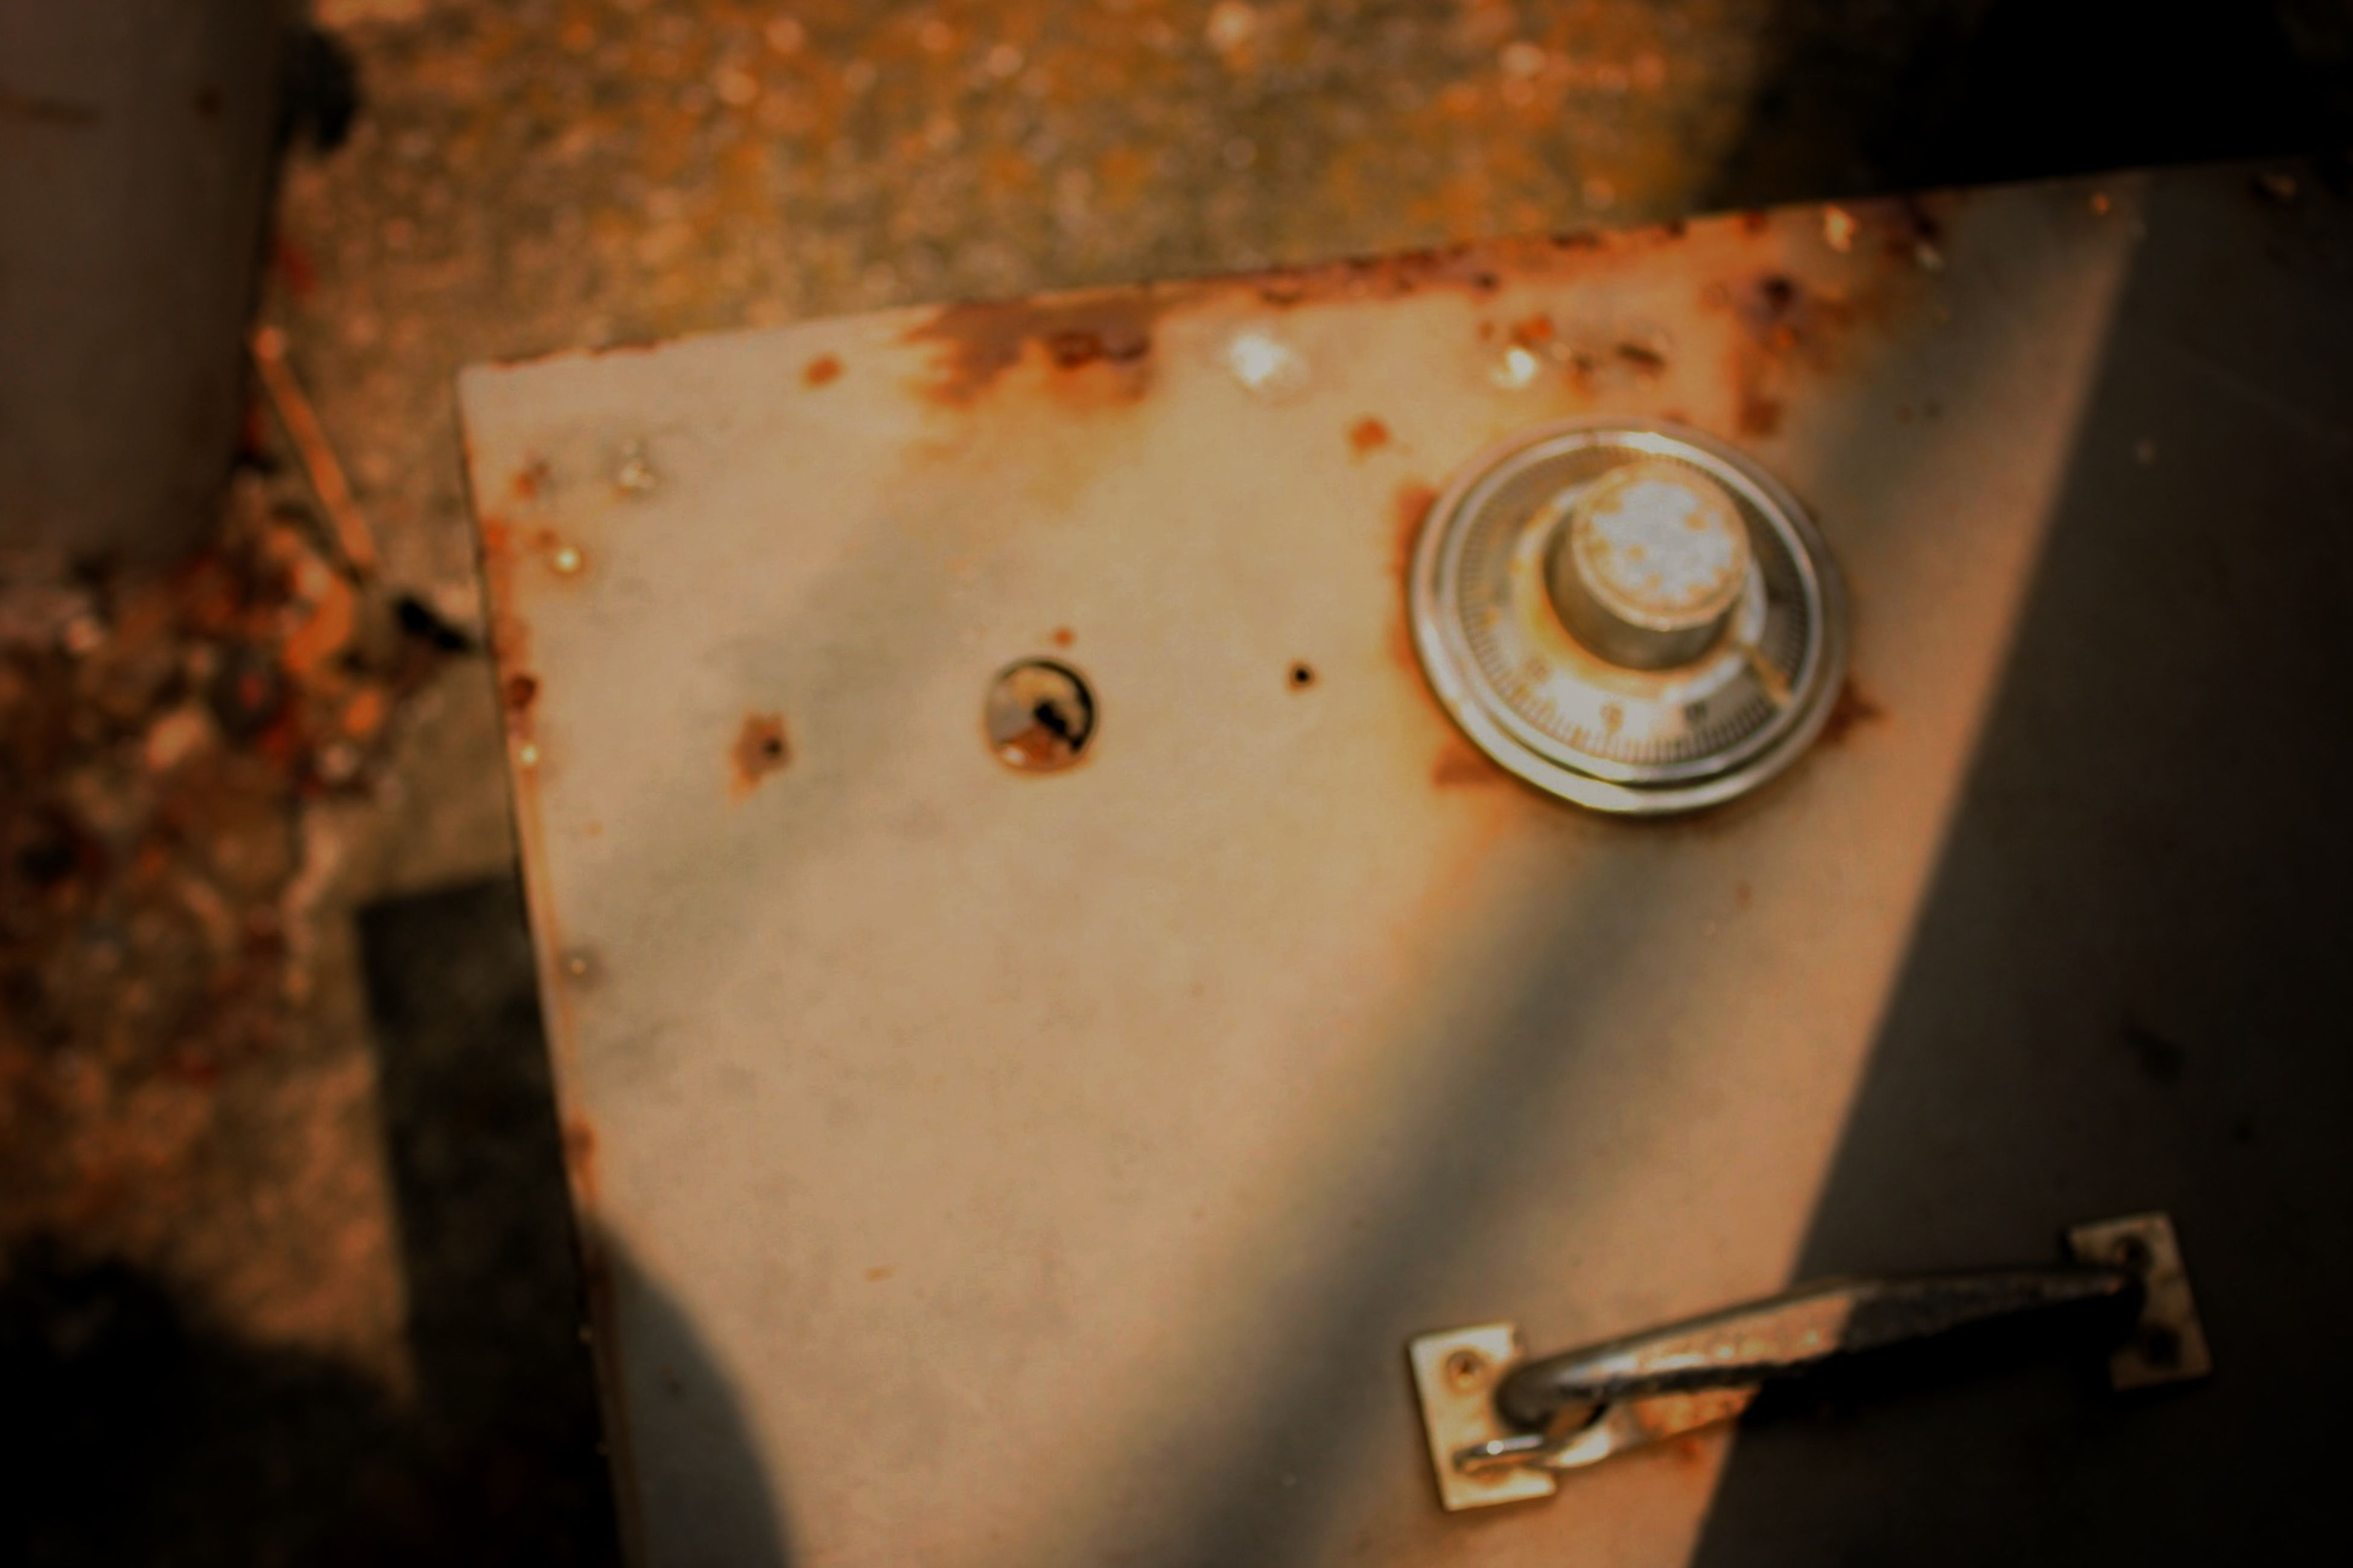 close-up, indoors, old, metal, high angle view, damaged, no people, part of, abandoned, rusty, day, obsolete, old-fashioned, wall - building feature, reflection, wet, focus on foreground, selective focus, glass - material